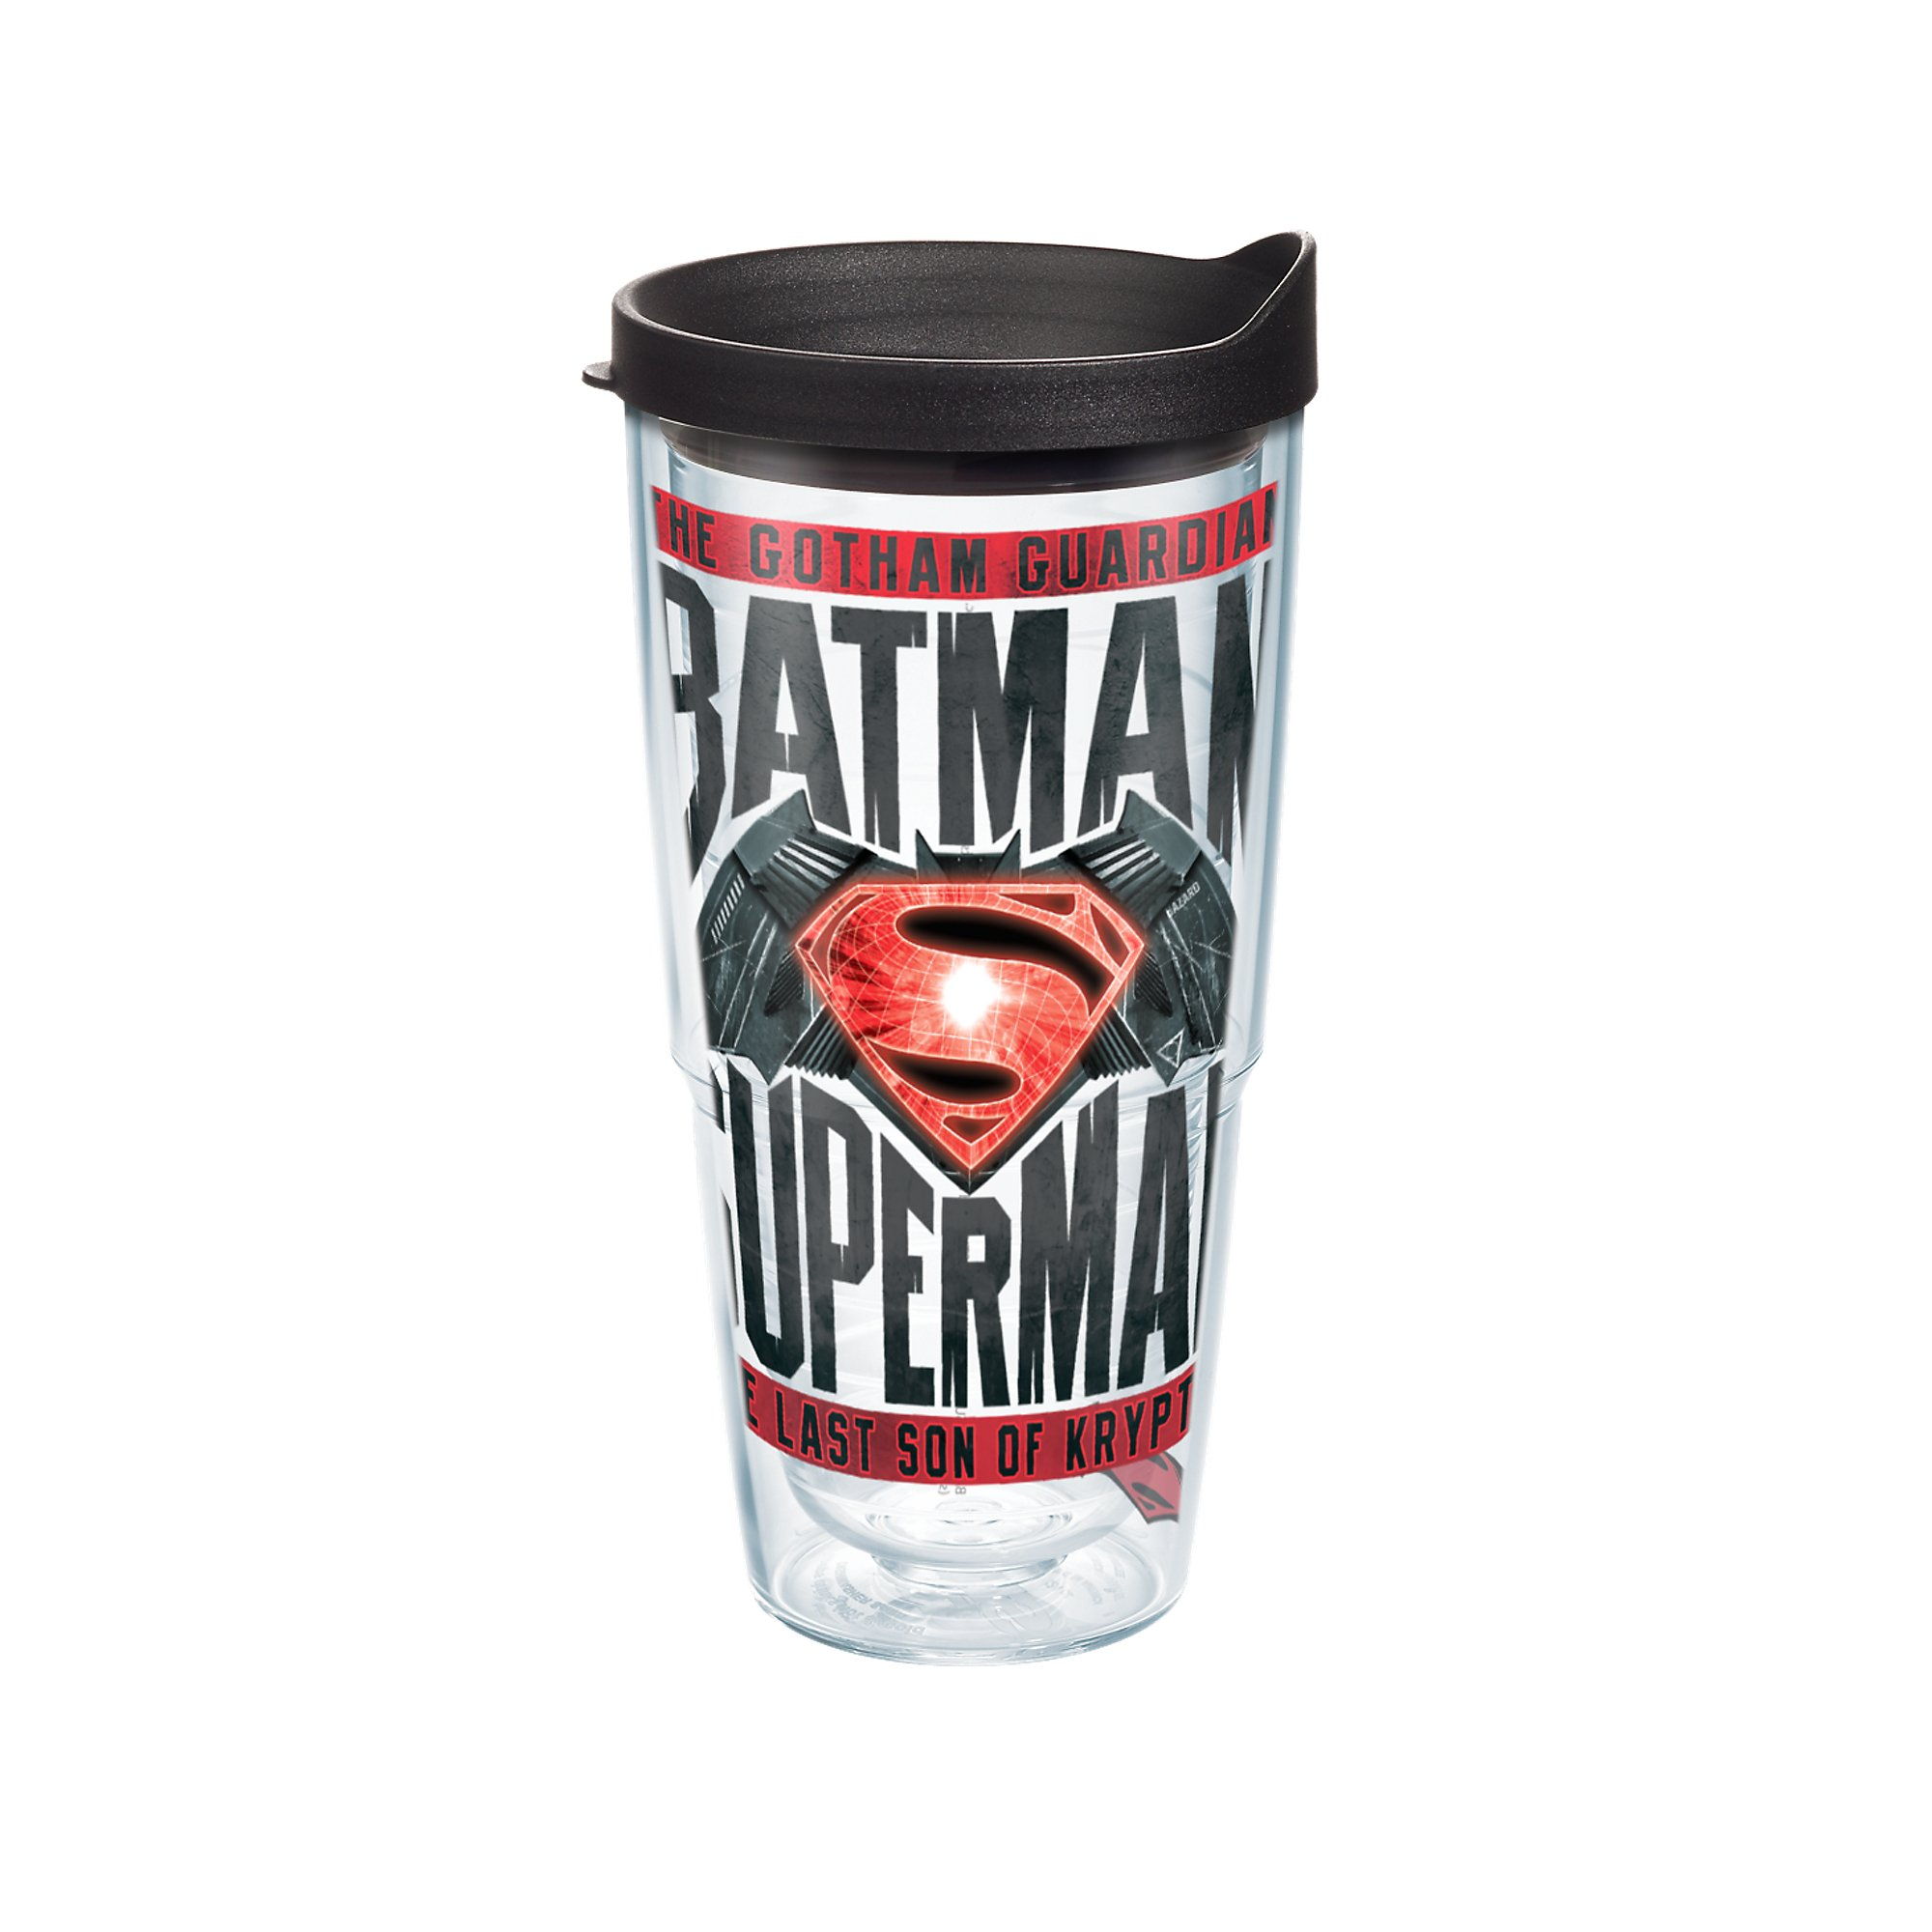 Tervis Warner Brothers Batman vs Superman Movie Wrap Tumbler with Black Lid, 24 oz, Clear